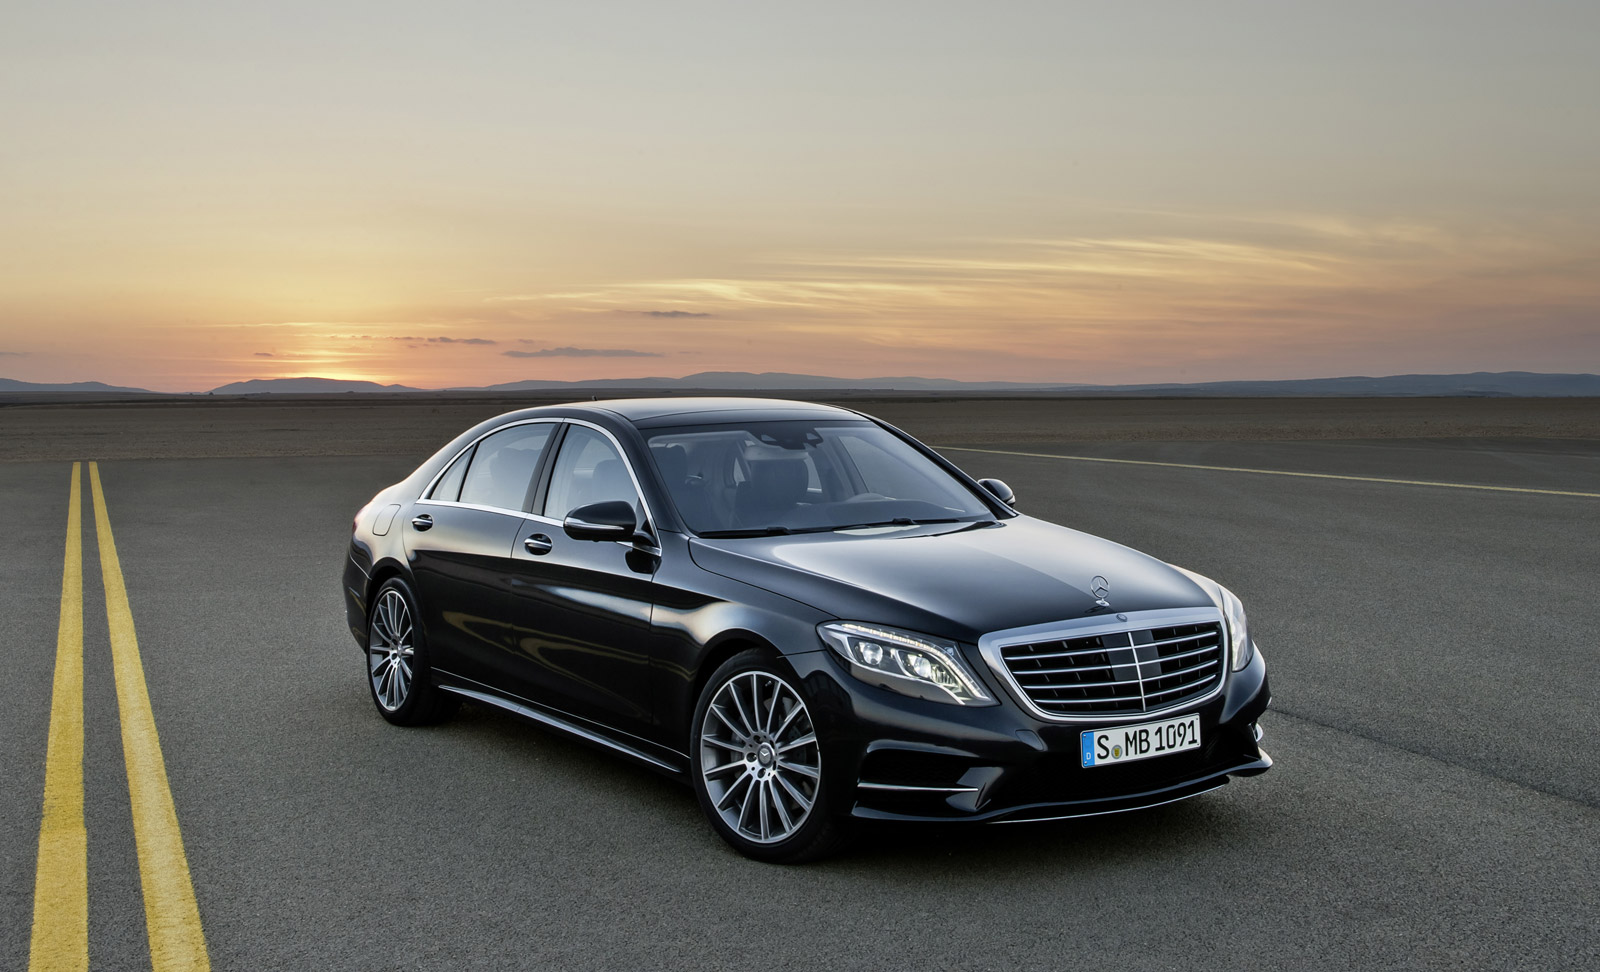 2014 mercedes benz s class review ratings specs prices for Mercedes benz s class coupe price